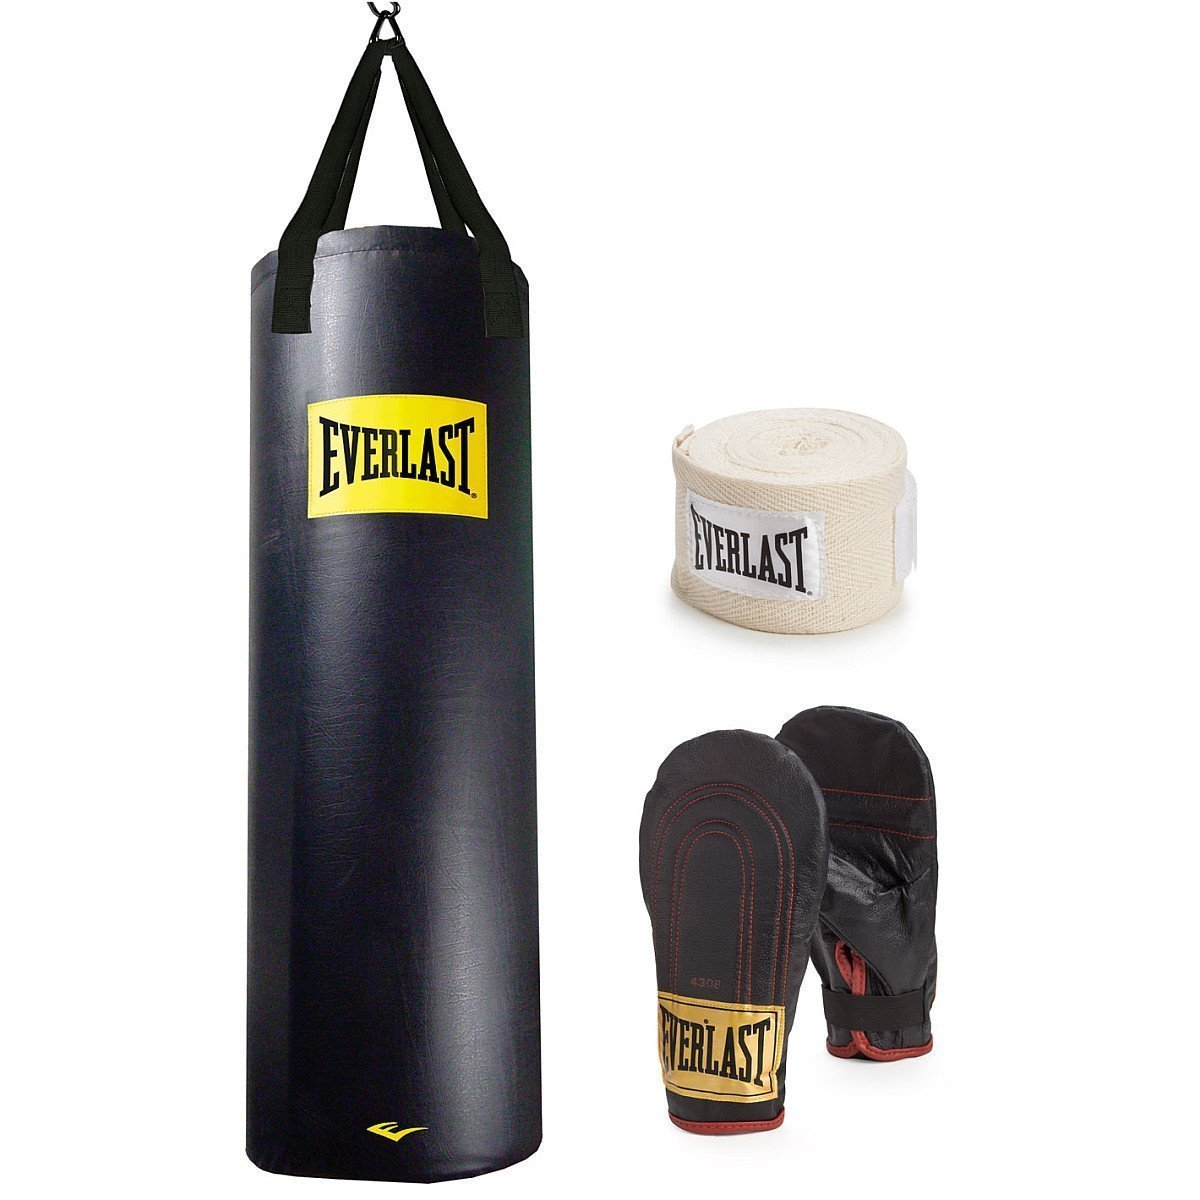 Everlast B00VR108U8 100-pound Nevatear従来ヘビーバッグ(ロゴ) ( 100lb Everlast/キット) W/キット) B00VR108U8, 名護市:d2338d9a --- capela.dominiotemporario.com